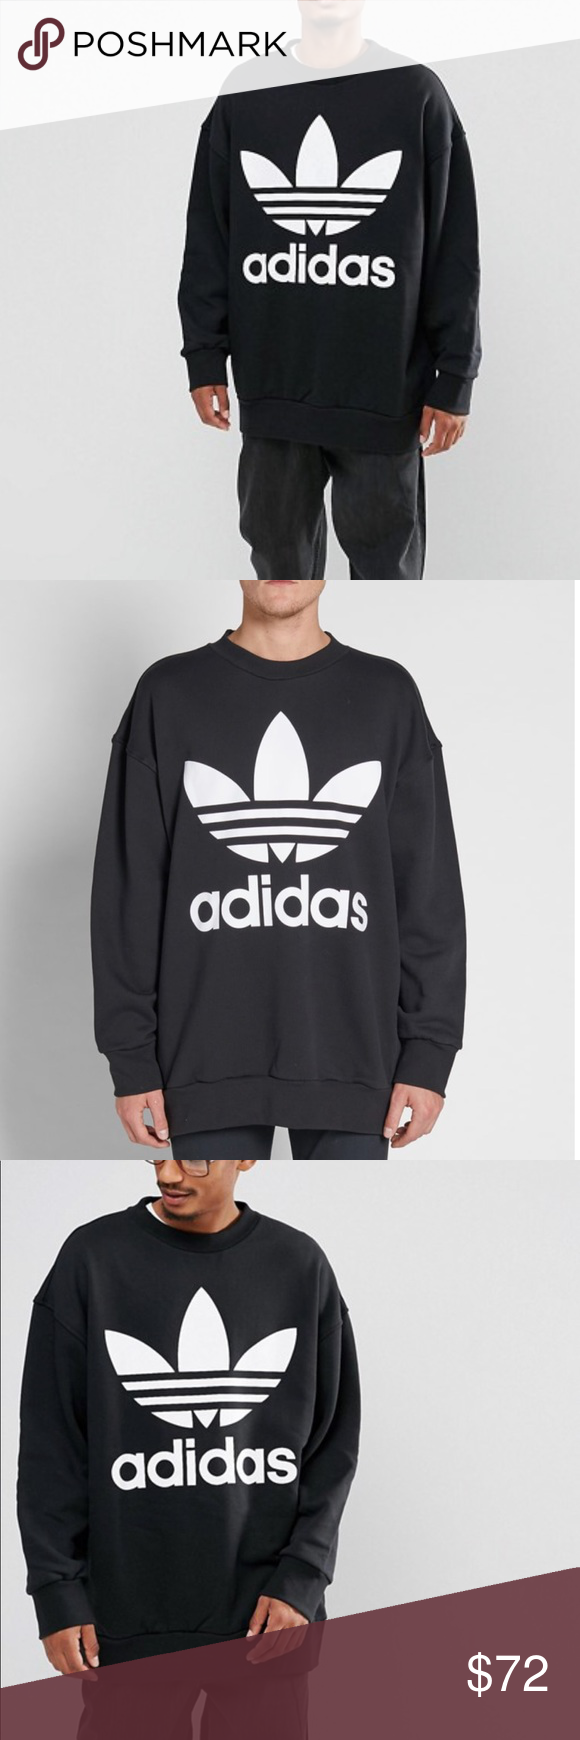 Brand New Adidas Oversized Crewneck Sweatshirt Brand New With Tags Never Been Used This Is An Oversi Sweatshirts Crew Neck Sweatshirt Branded Sweatshirts [ 1740 x 580 Pixel ]